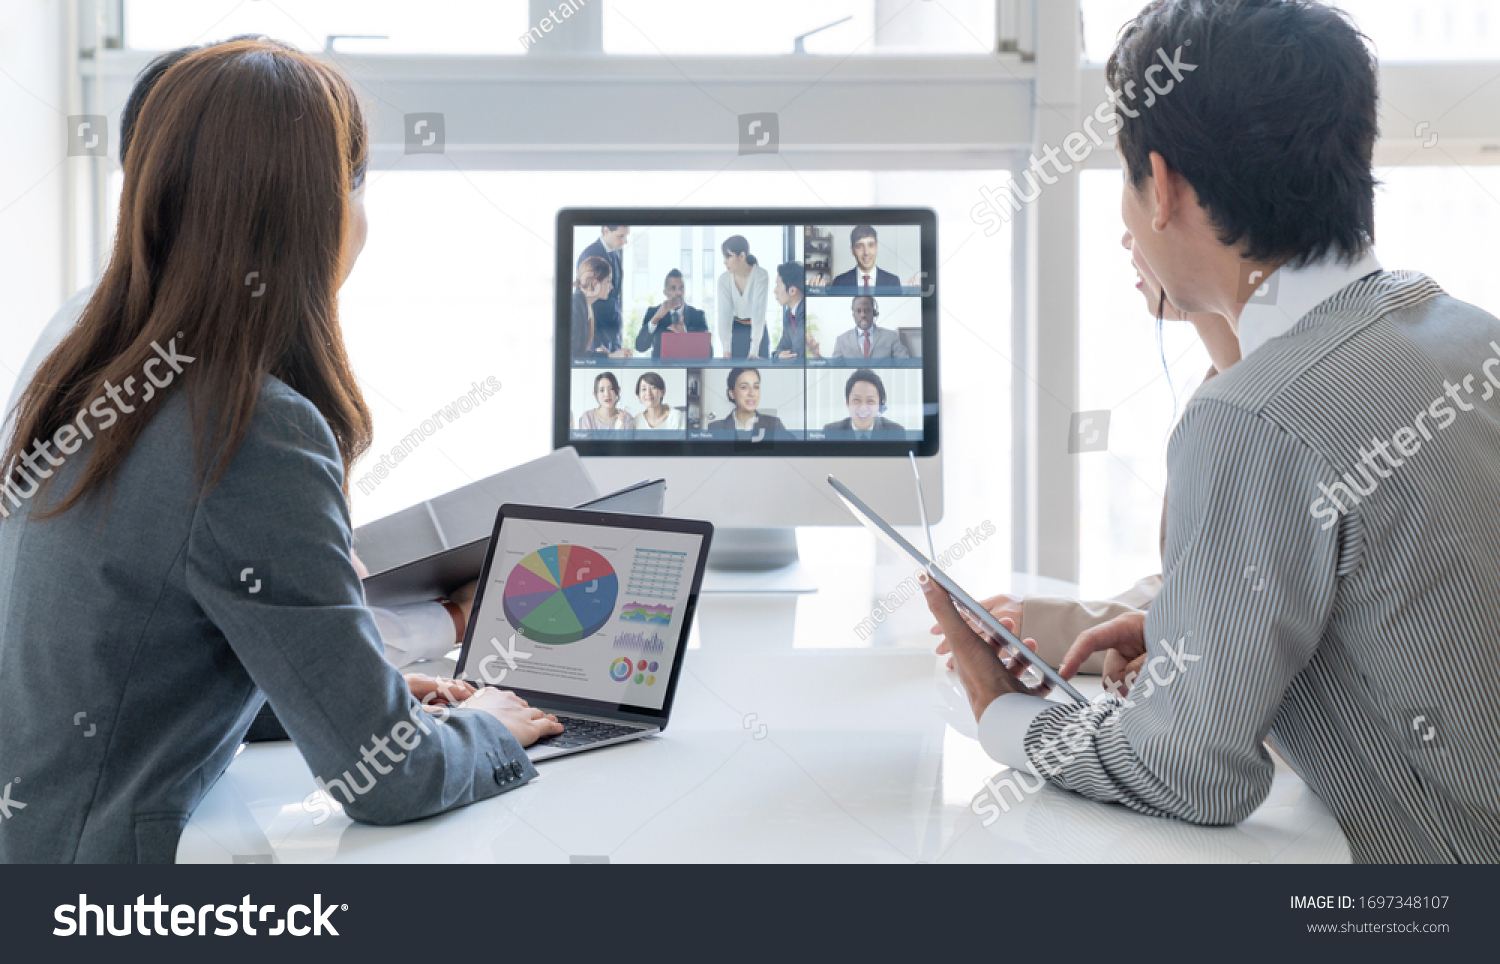 Video conference concept. Telemeeting. Videophone. Teleconference. #1697348107